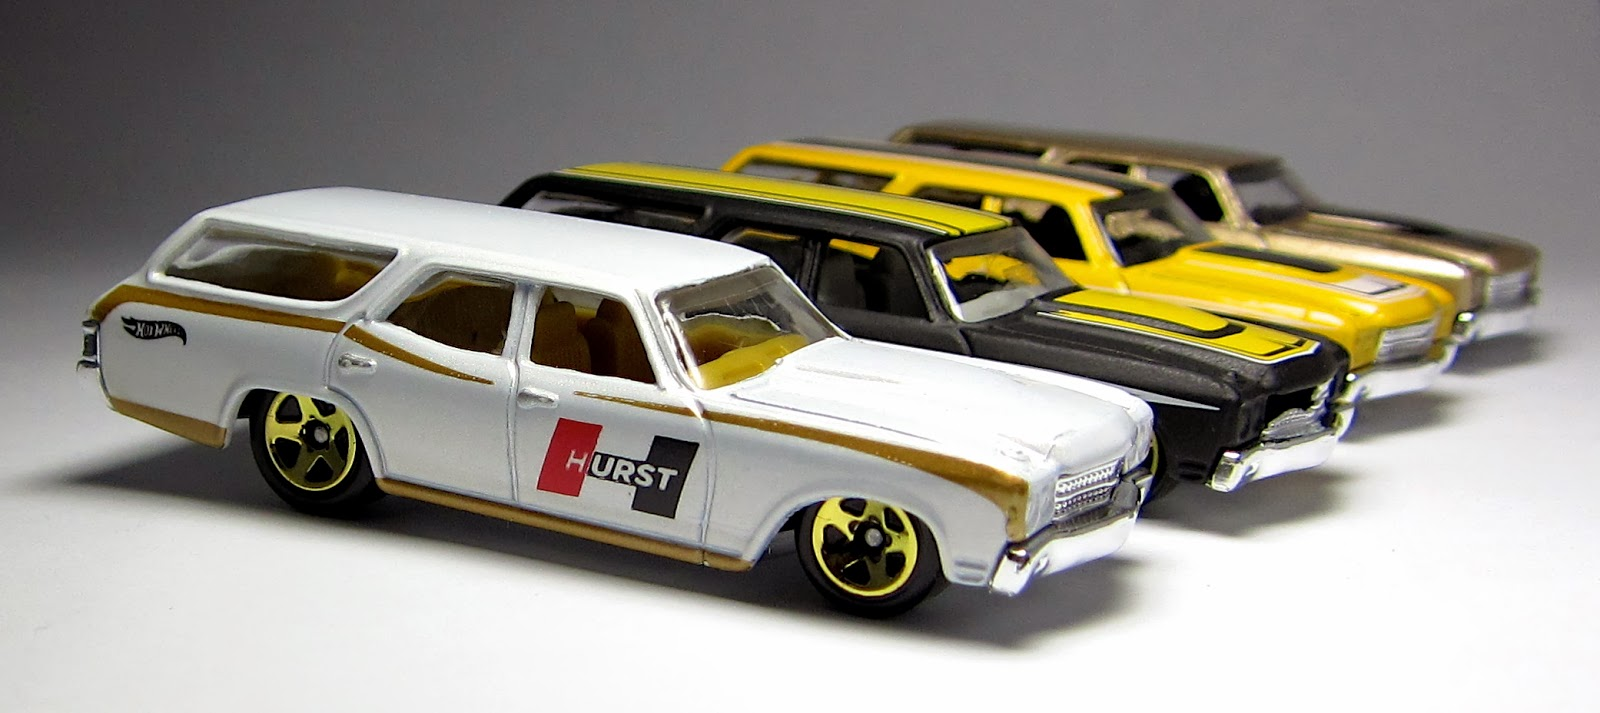 First Look 2014 Hot Wheels Hurst 70 Chevelle SS Wagon  the